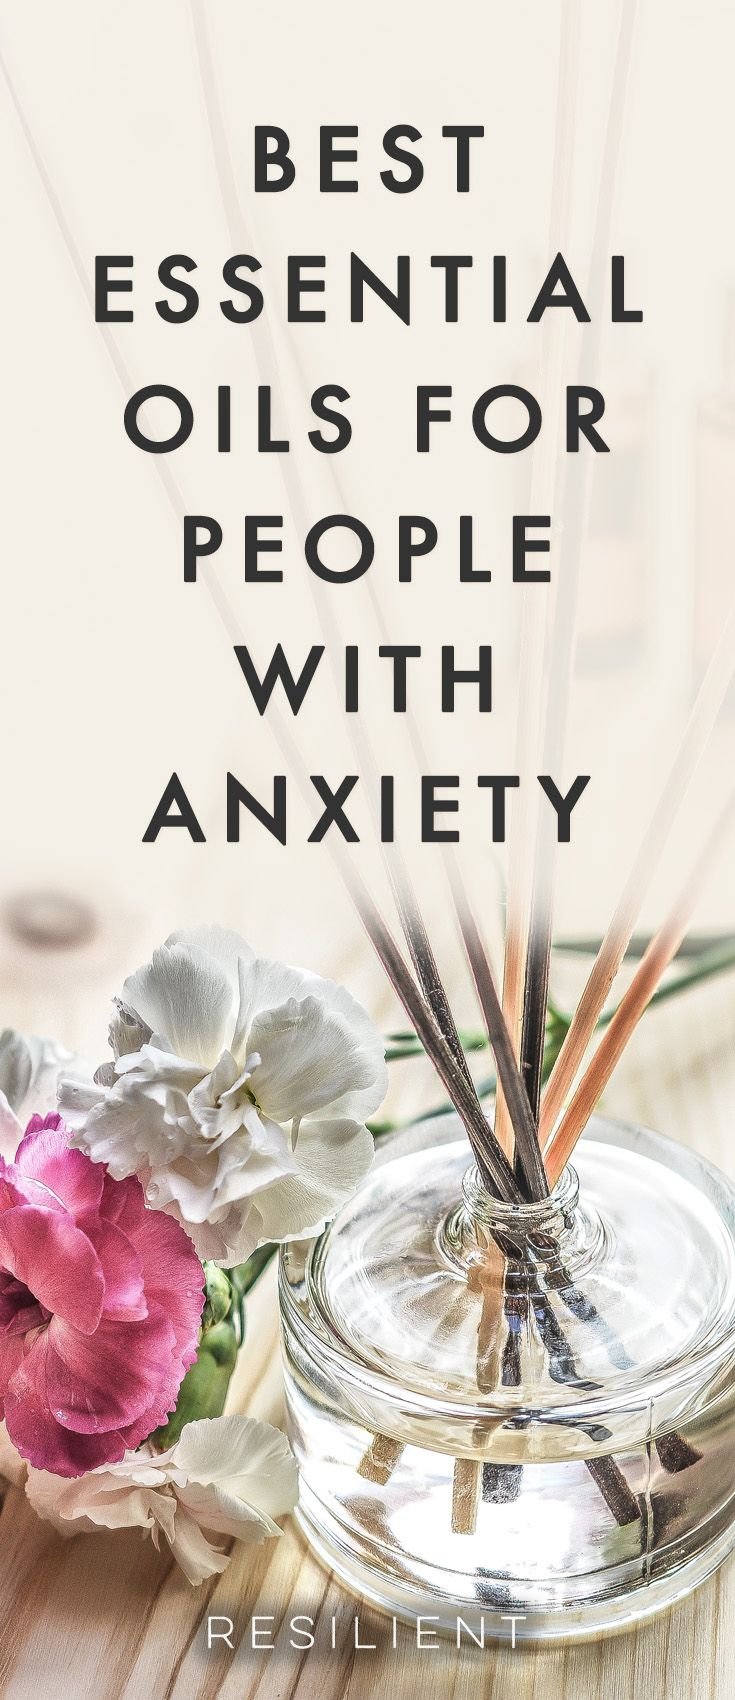 Have you ever tried using essential oils in your life? They can be a very soothing and uplifting natural addition to your life to enhance your mood and promote relaxation. Here are the 8 best essential oils for depression and anxiety. #anxiety #anxious #essentialoils #essentialoilsforanxiety